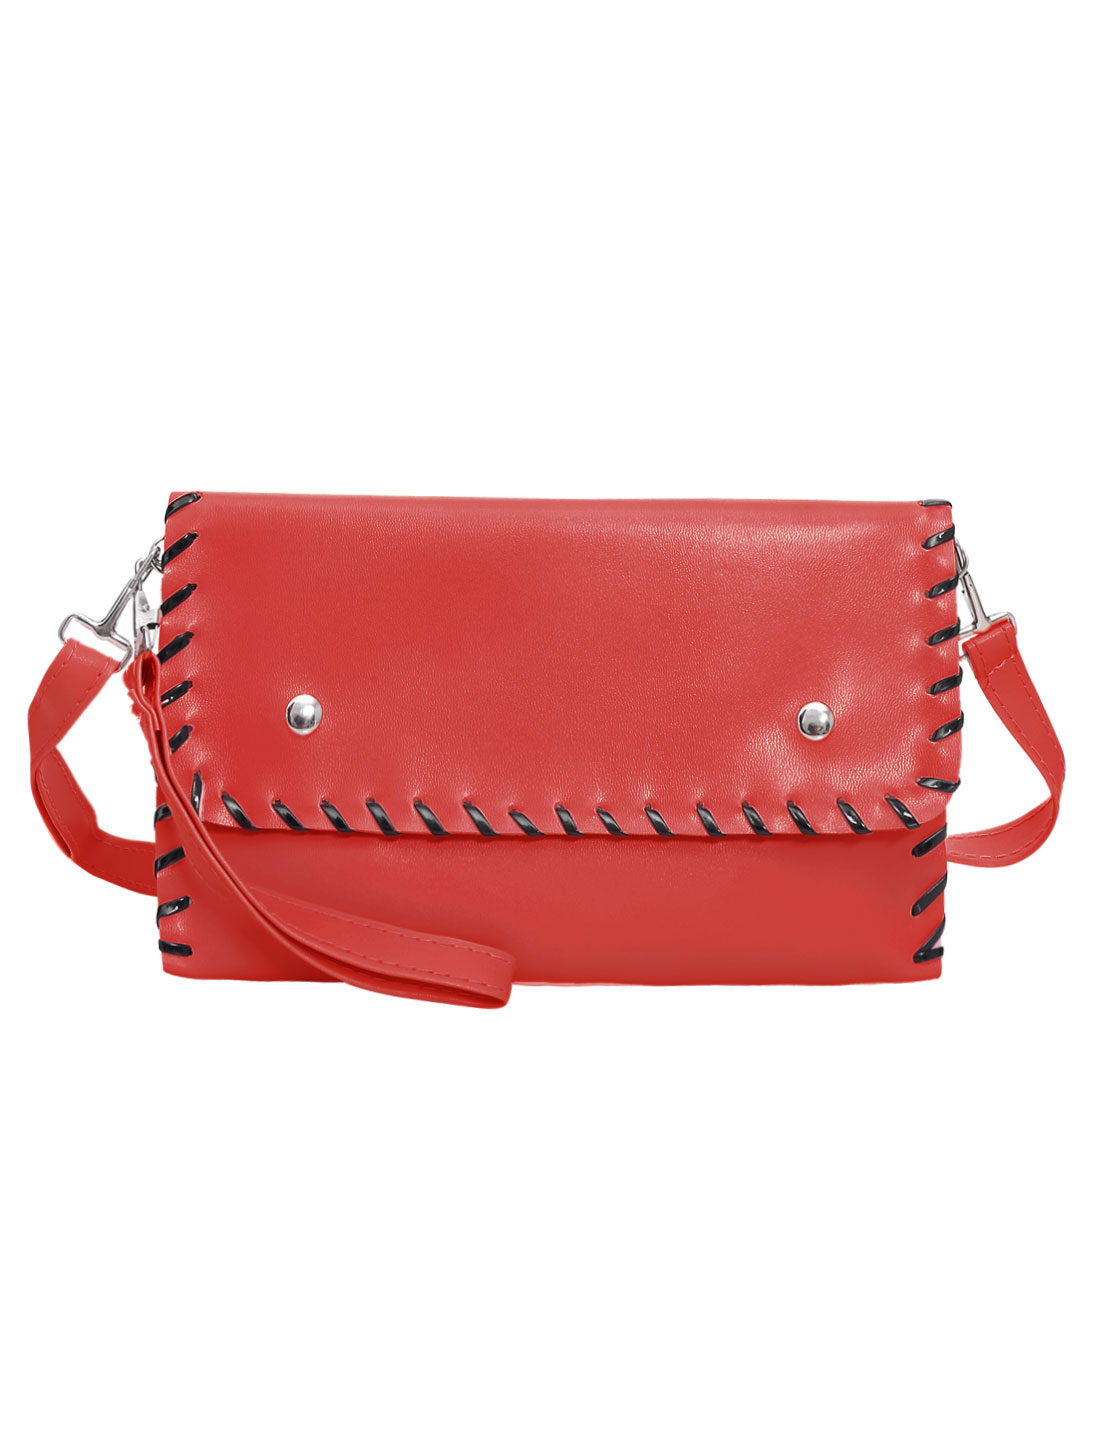 Woman Contrast-Colored Stitching Envelope Style Statement Clutch Bag Red